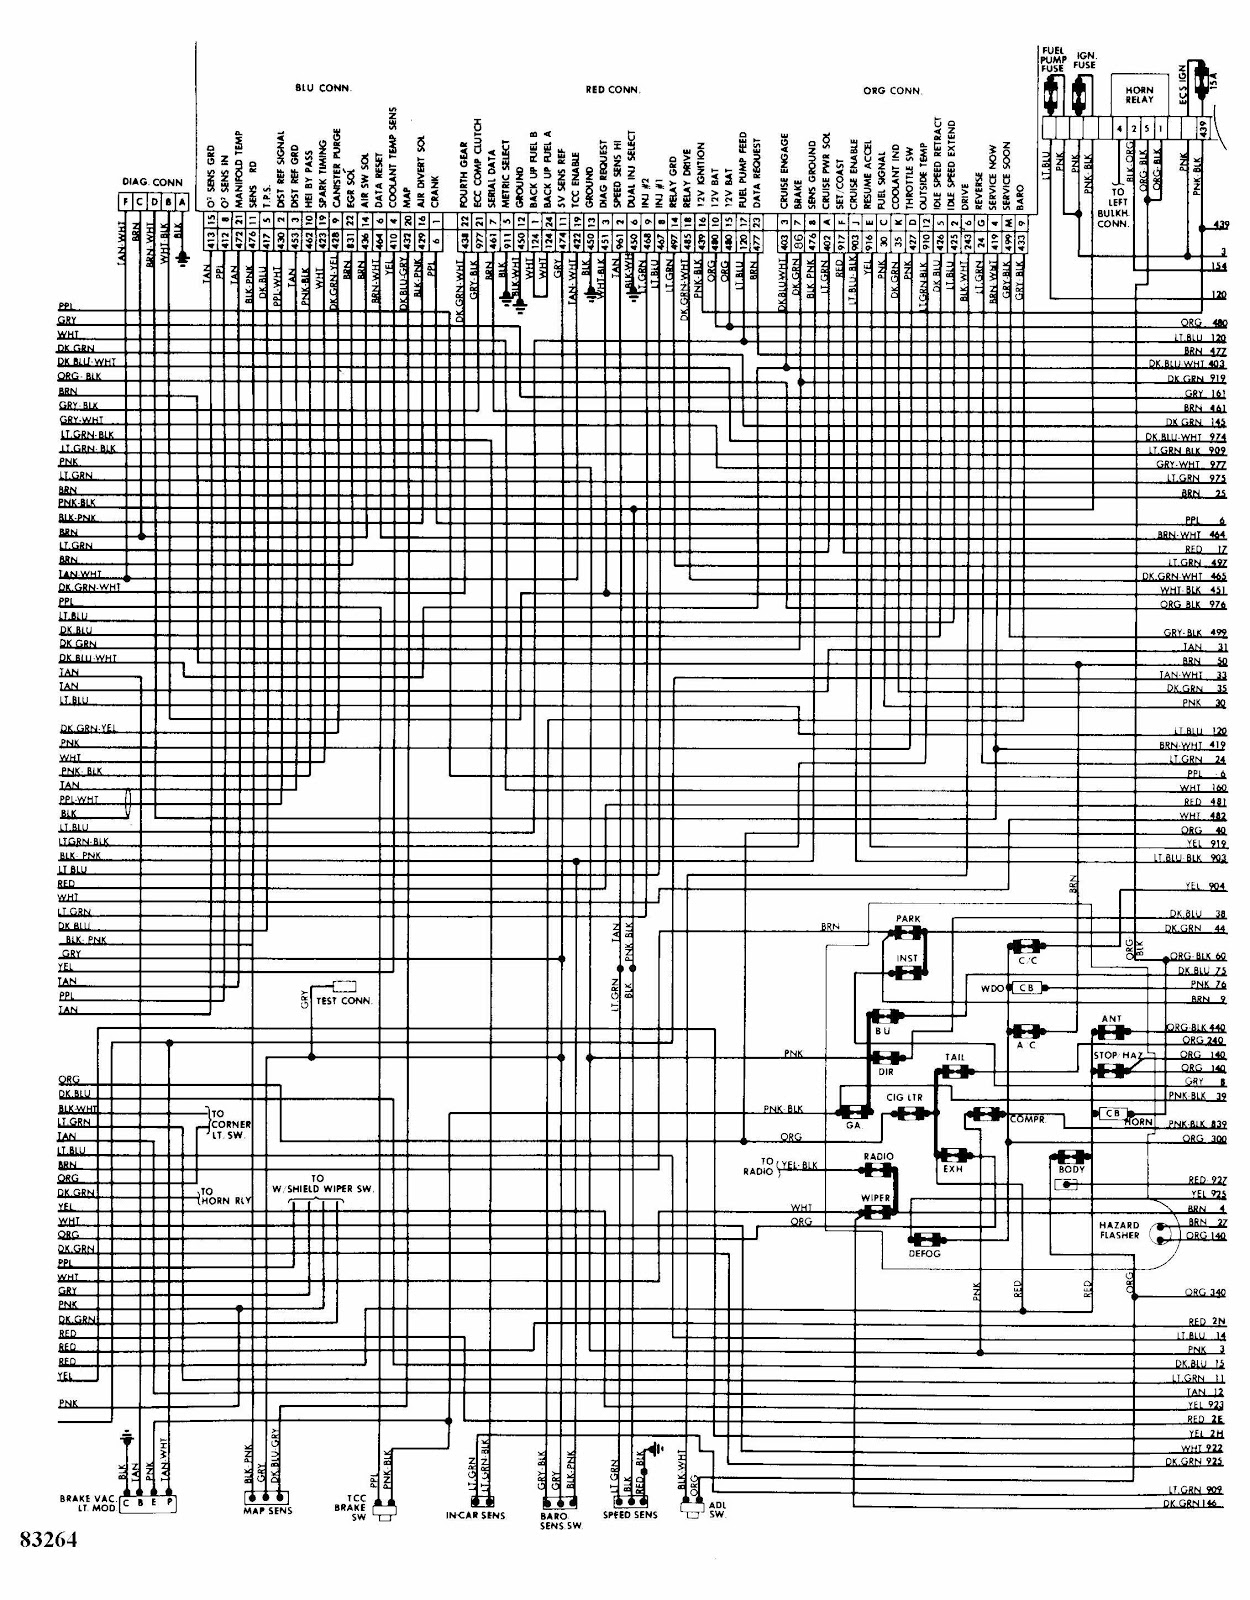 cadillac deville 1984 complete electrical wiring diagram 1968 cadillac coupe deville convertible 1968 coupe deville convertible [ 1250 x 1600 Pixel ]